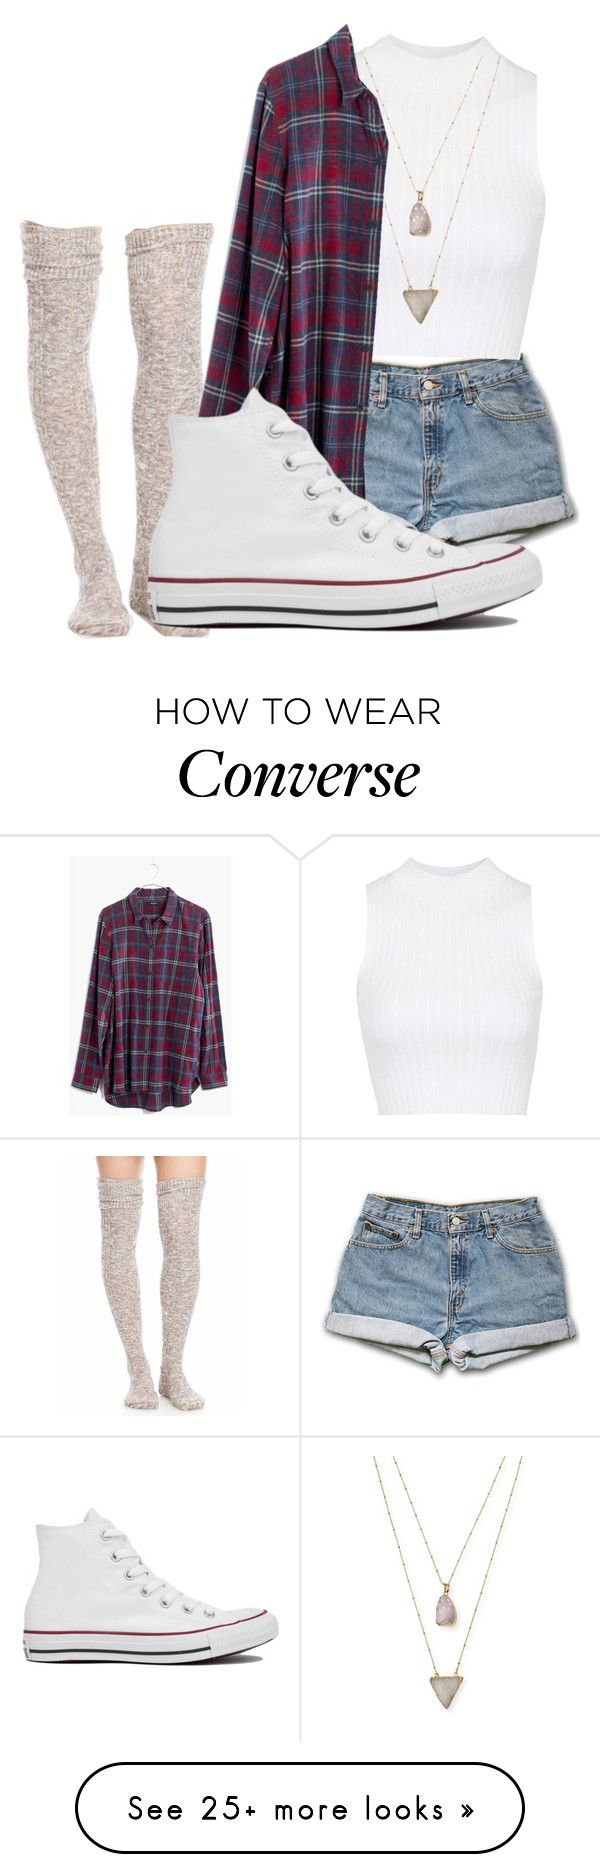 """Shorts w/ plaid and converse"" by anasush on Polyvore featuring moda, Free People, Topshop, Panacea, Madewell y Converse"